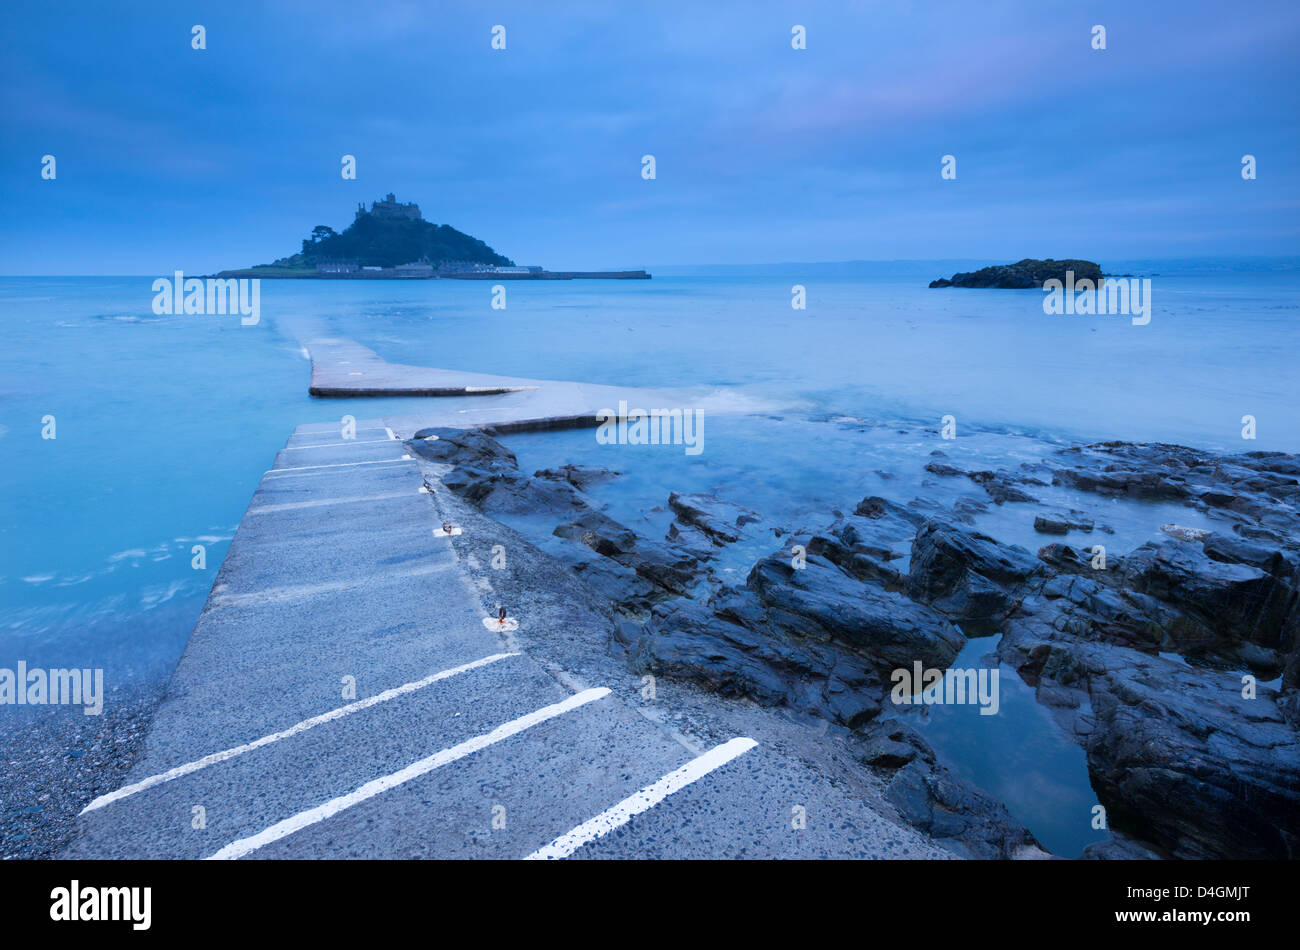 Slipway at St Michael's Mount at dawn, Marazion, Cornwall, England. Winter (March) 2013. - Stock Image